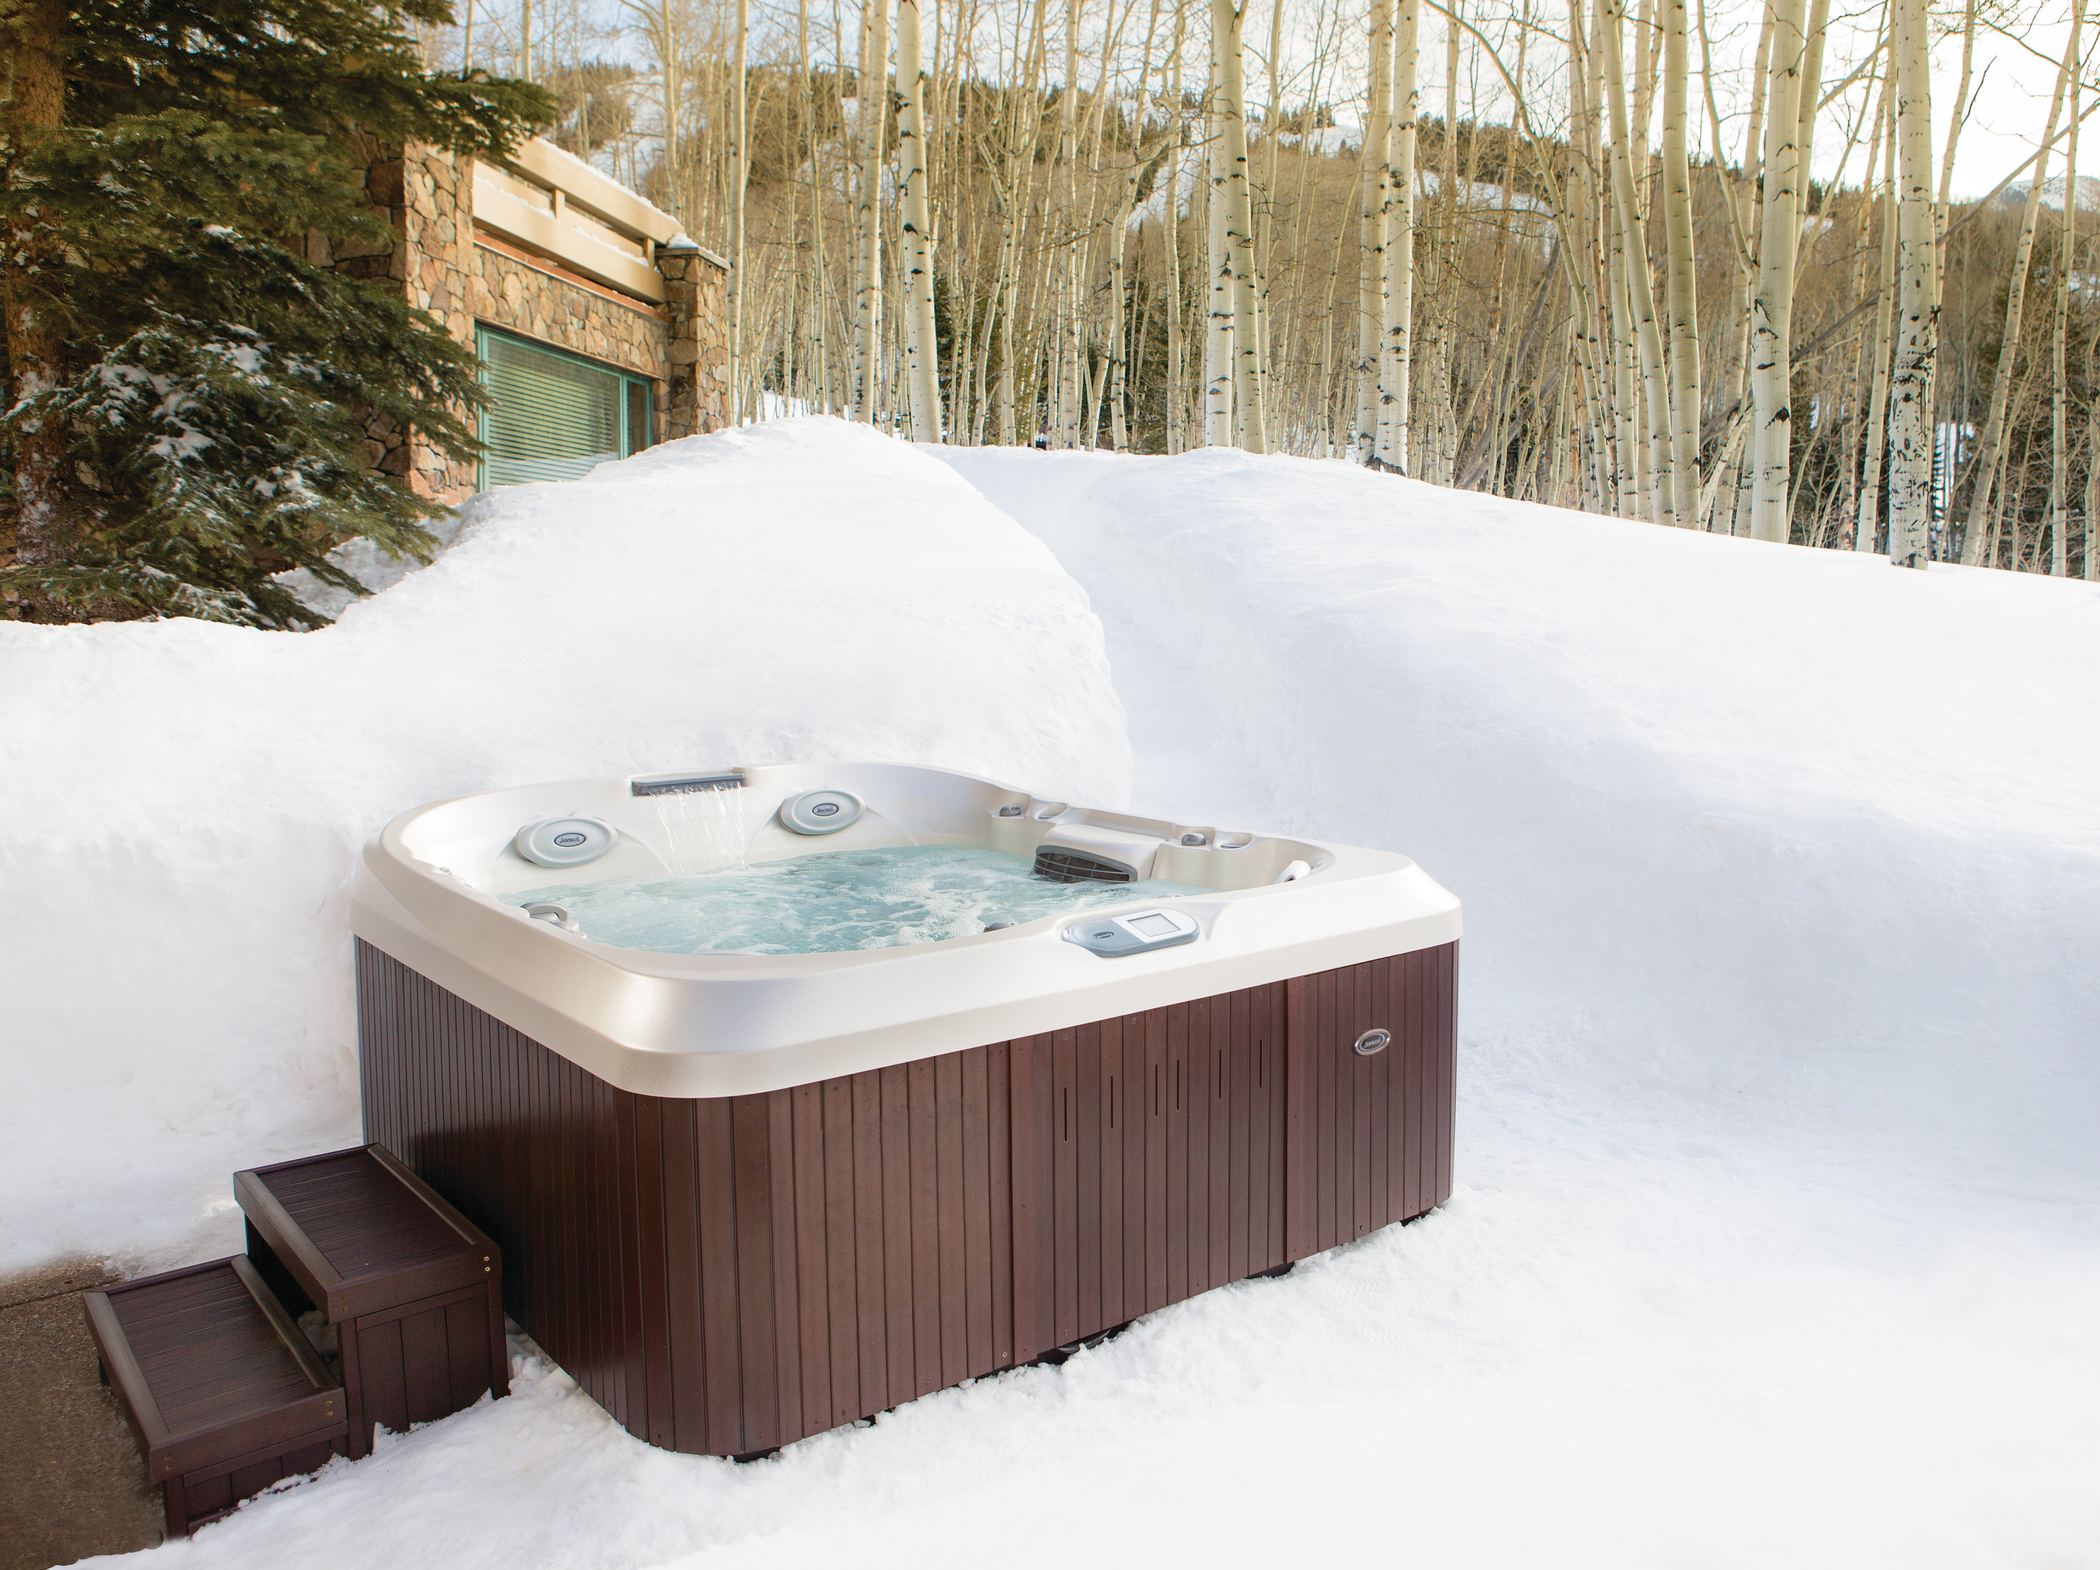 Outdoor Jacuzzi Hot Tub in the snow.